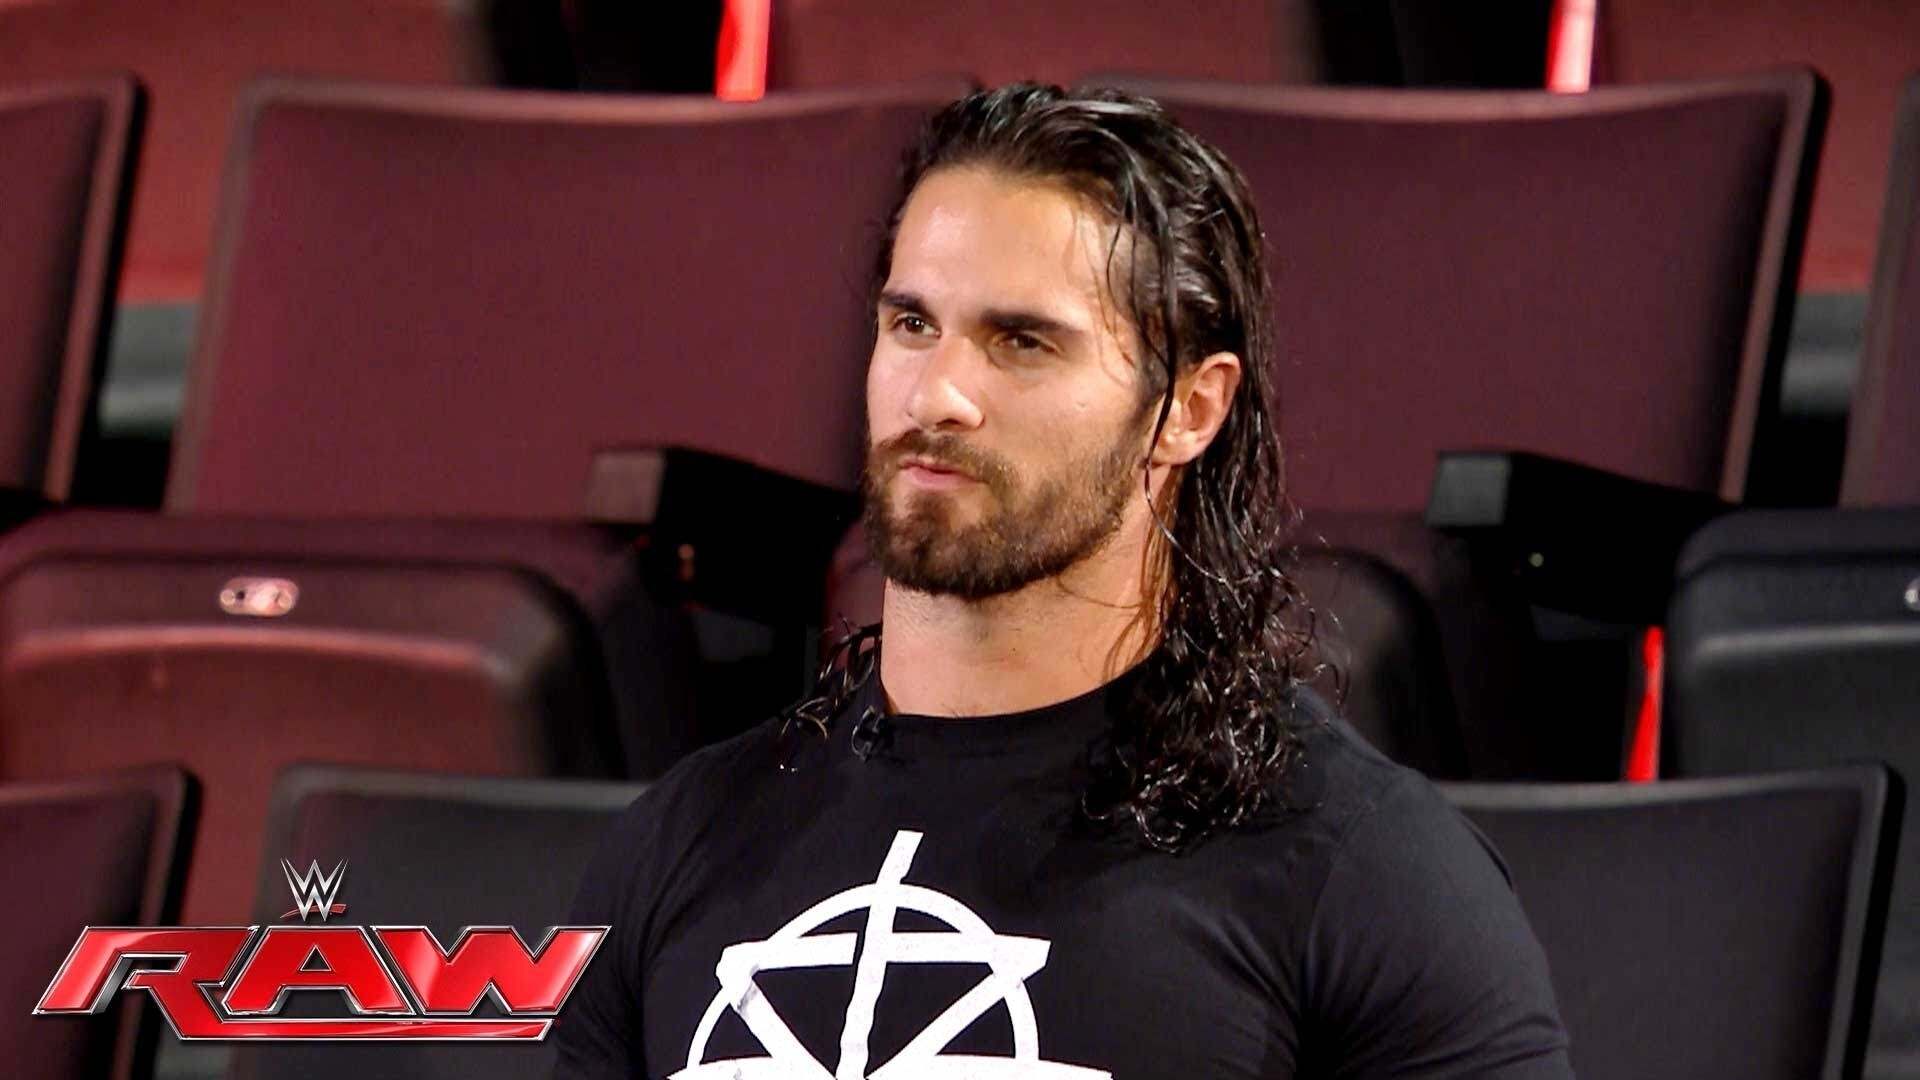 wwe raw star seth rollins wallpaper | hd wallpapers